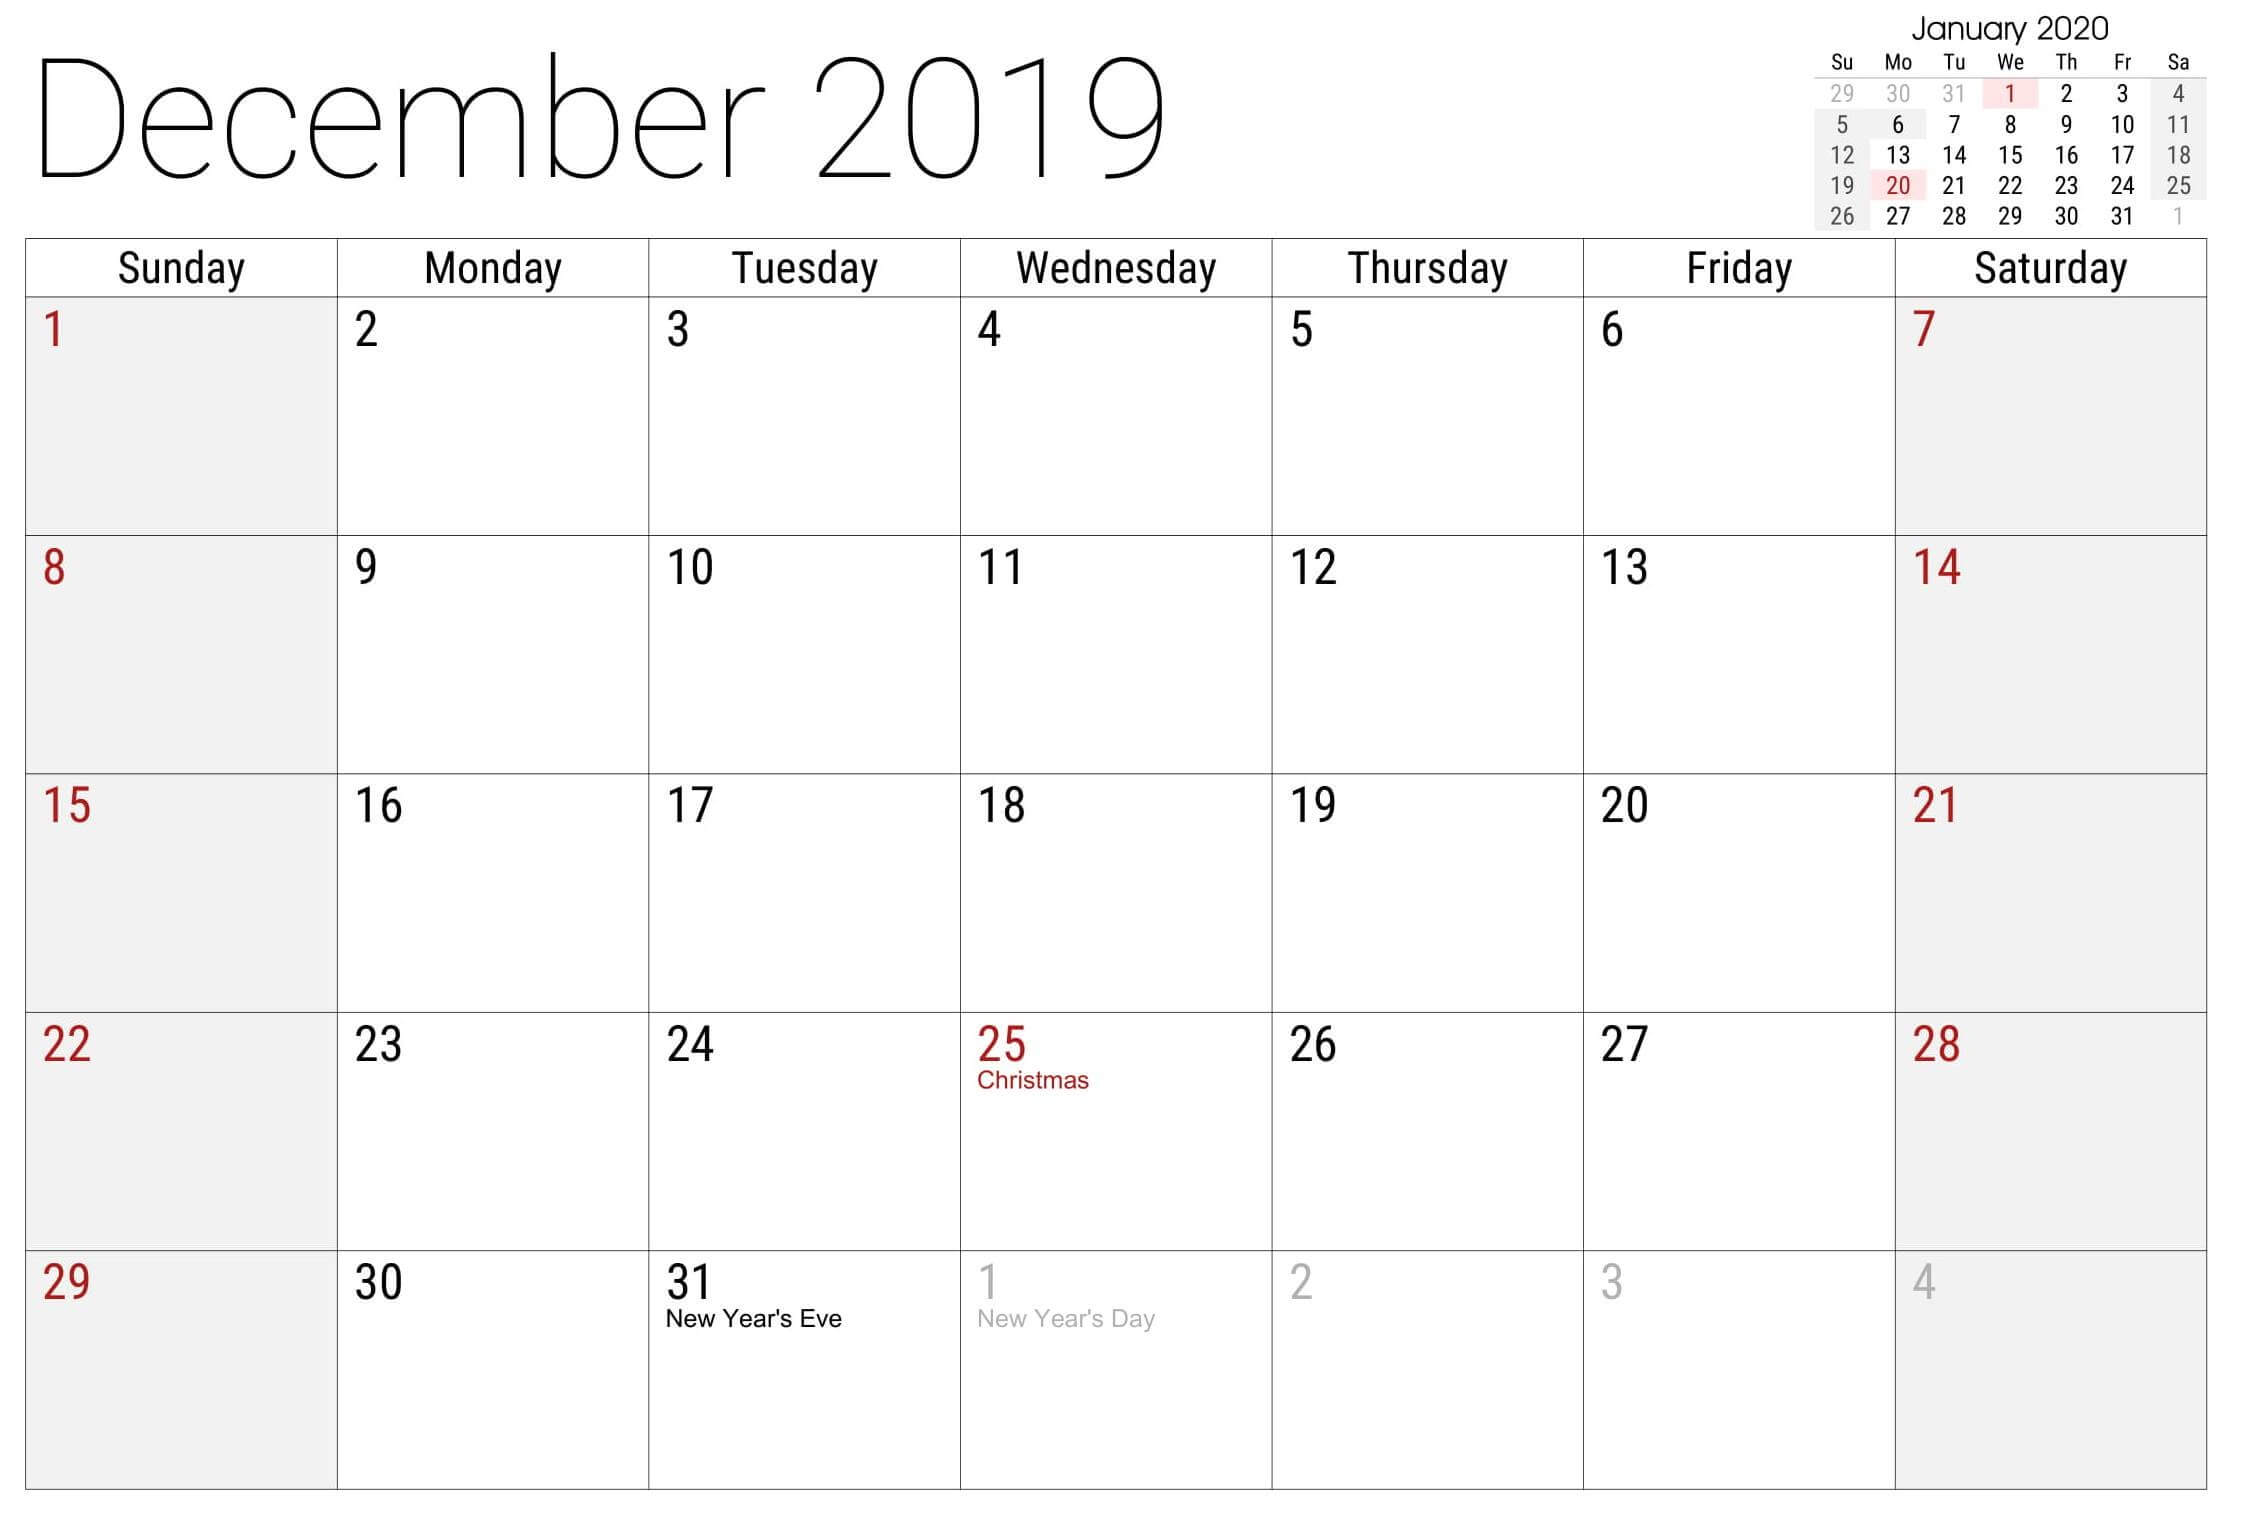 Calendar December 2019 With Holidays US